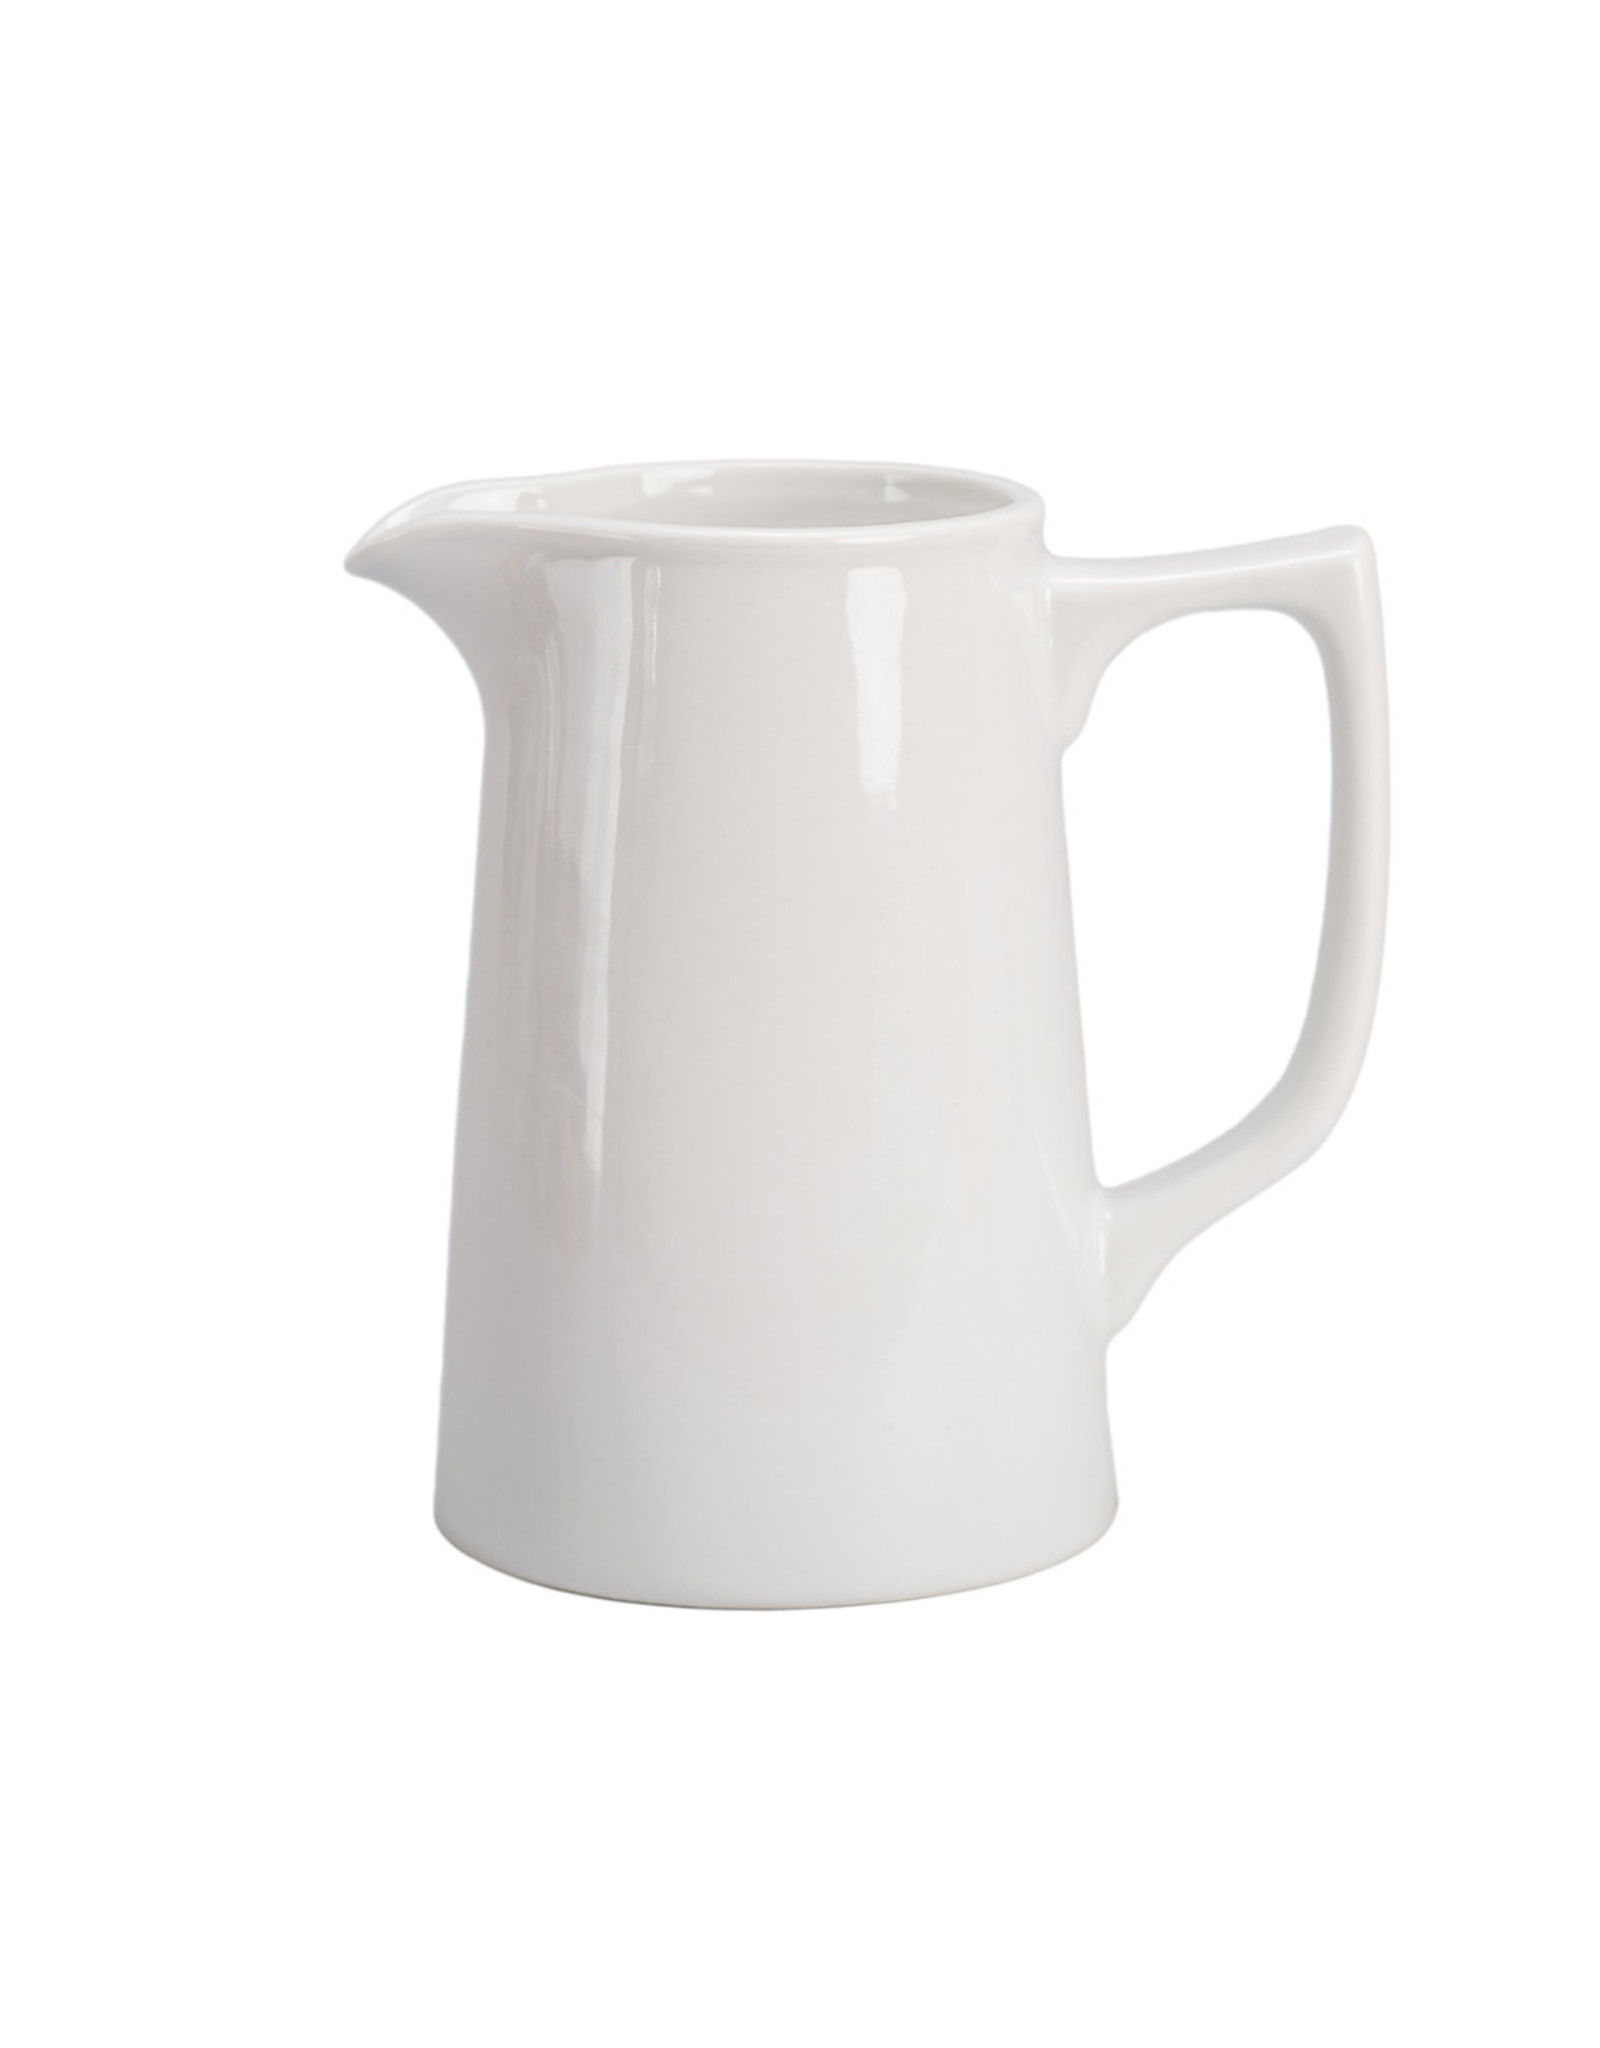 PITCHER STRAIGHT SIDE SMALL 1.5QT